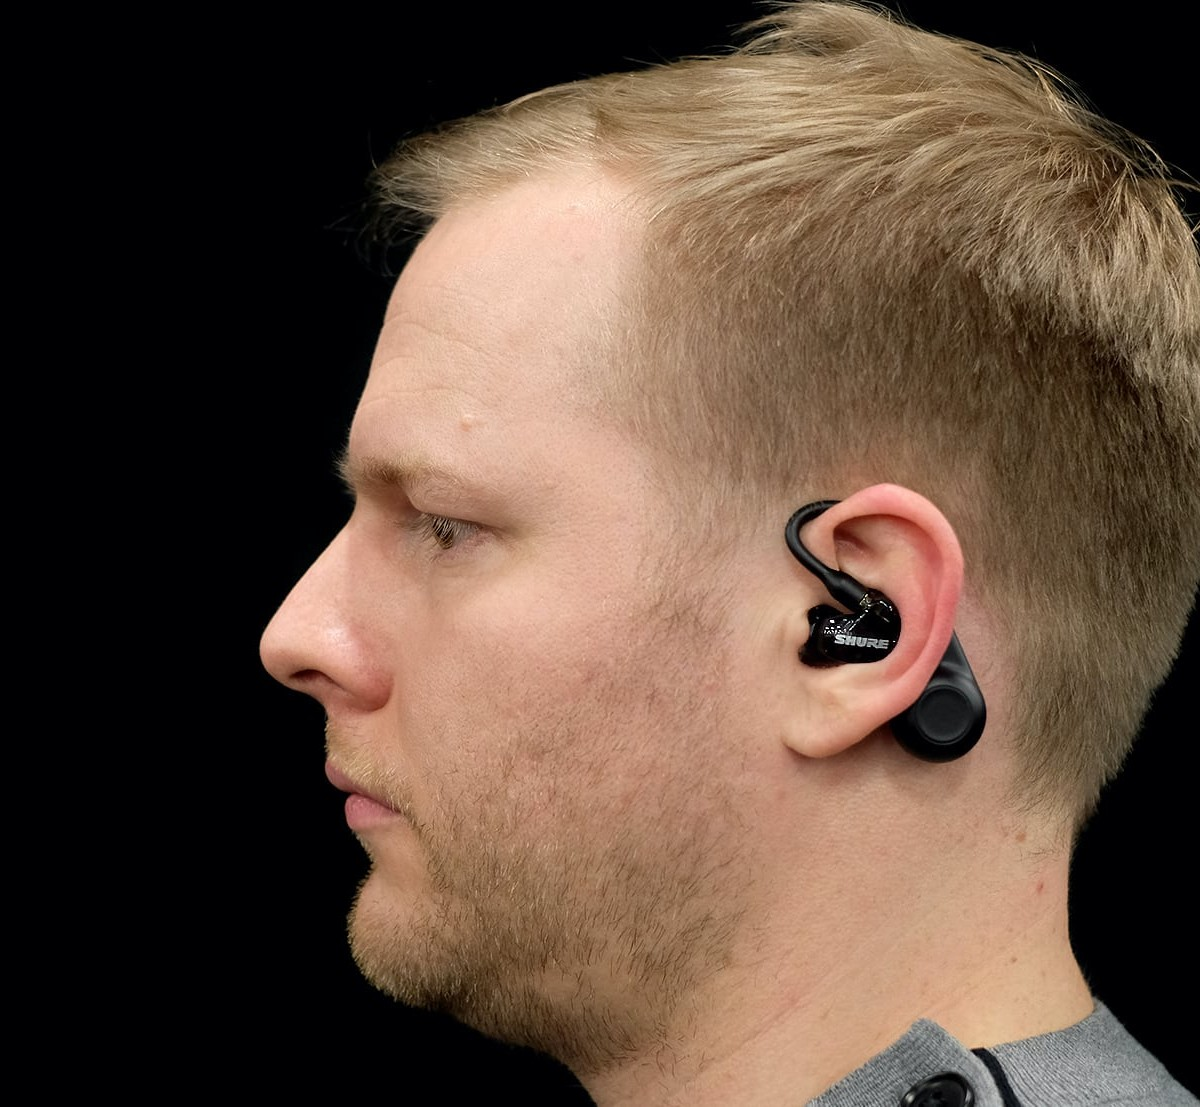 Shure AONIC 215 Sound-Isolating Earphones provide a musician-level experience